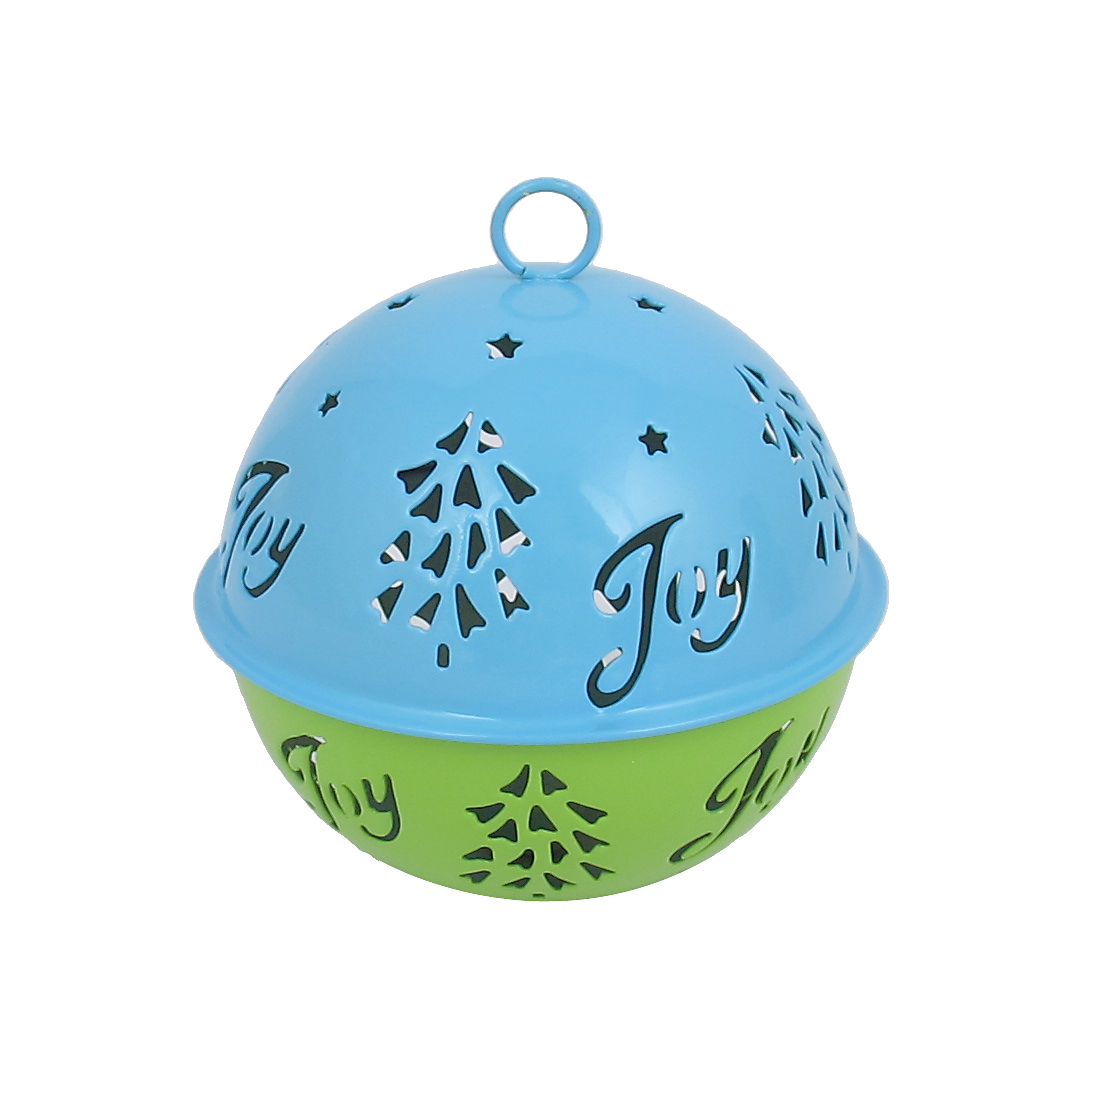 85mm Diameter Blue Green Metal Christmas Tree Detail Ball Shape Hollow Out Design Jingle Ring Bell Ornament for Celebration Case Party